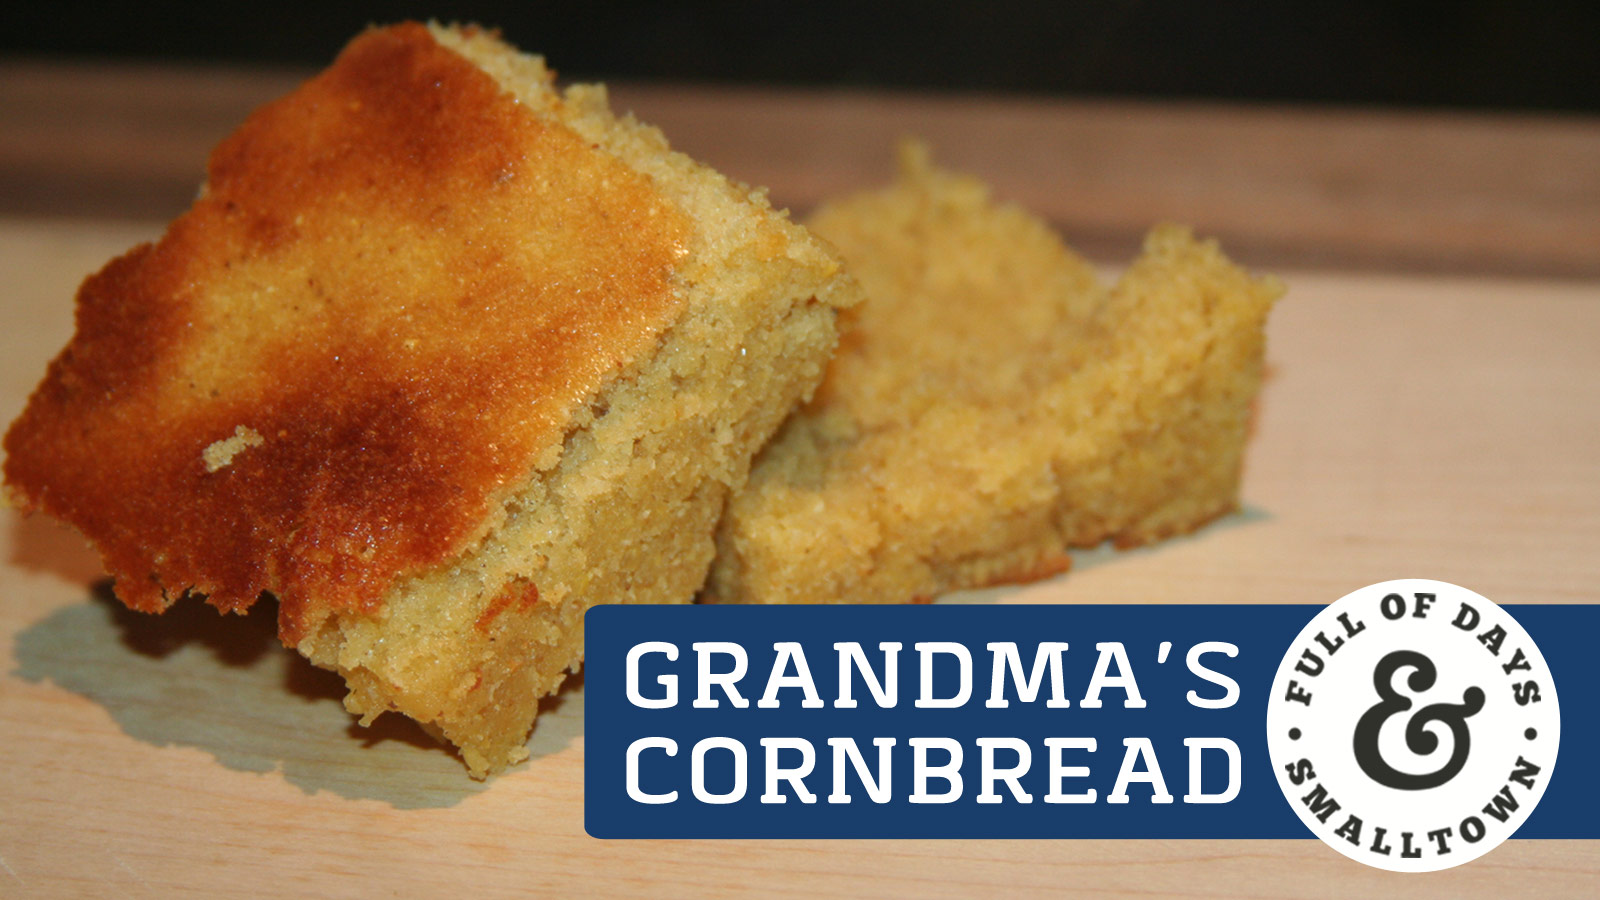 grandmas-buttermilk-cornbread-recipe_full-of-days_1600-x-900